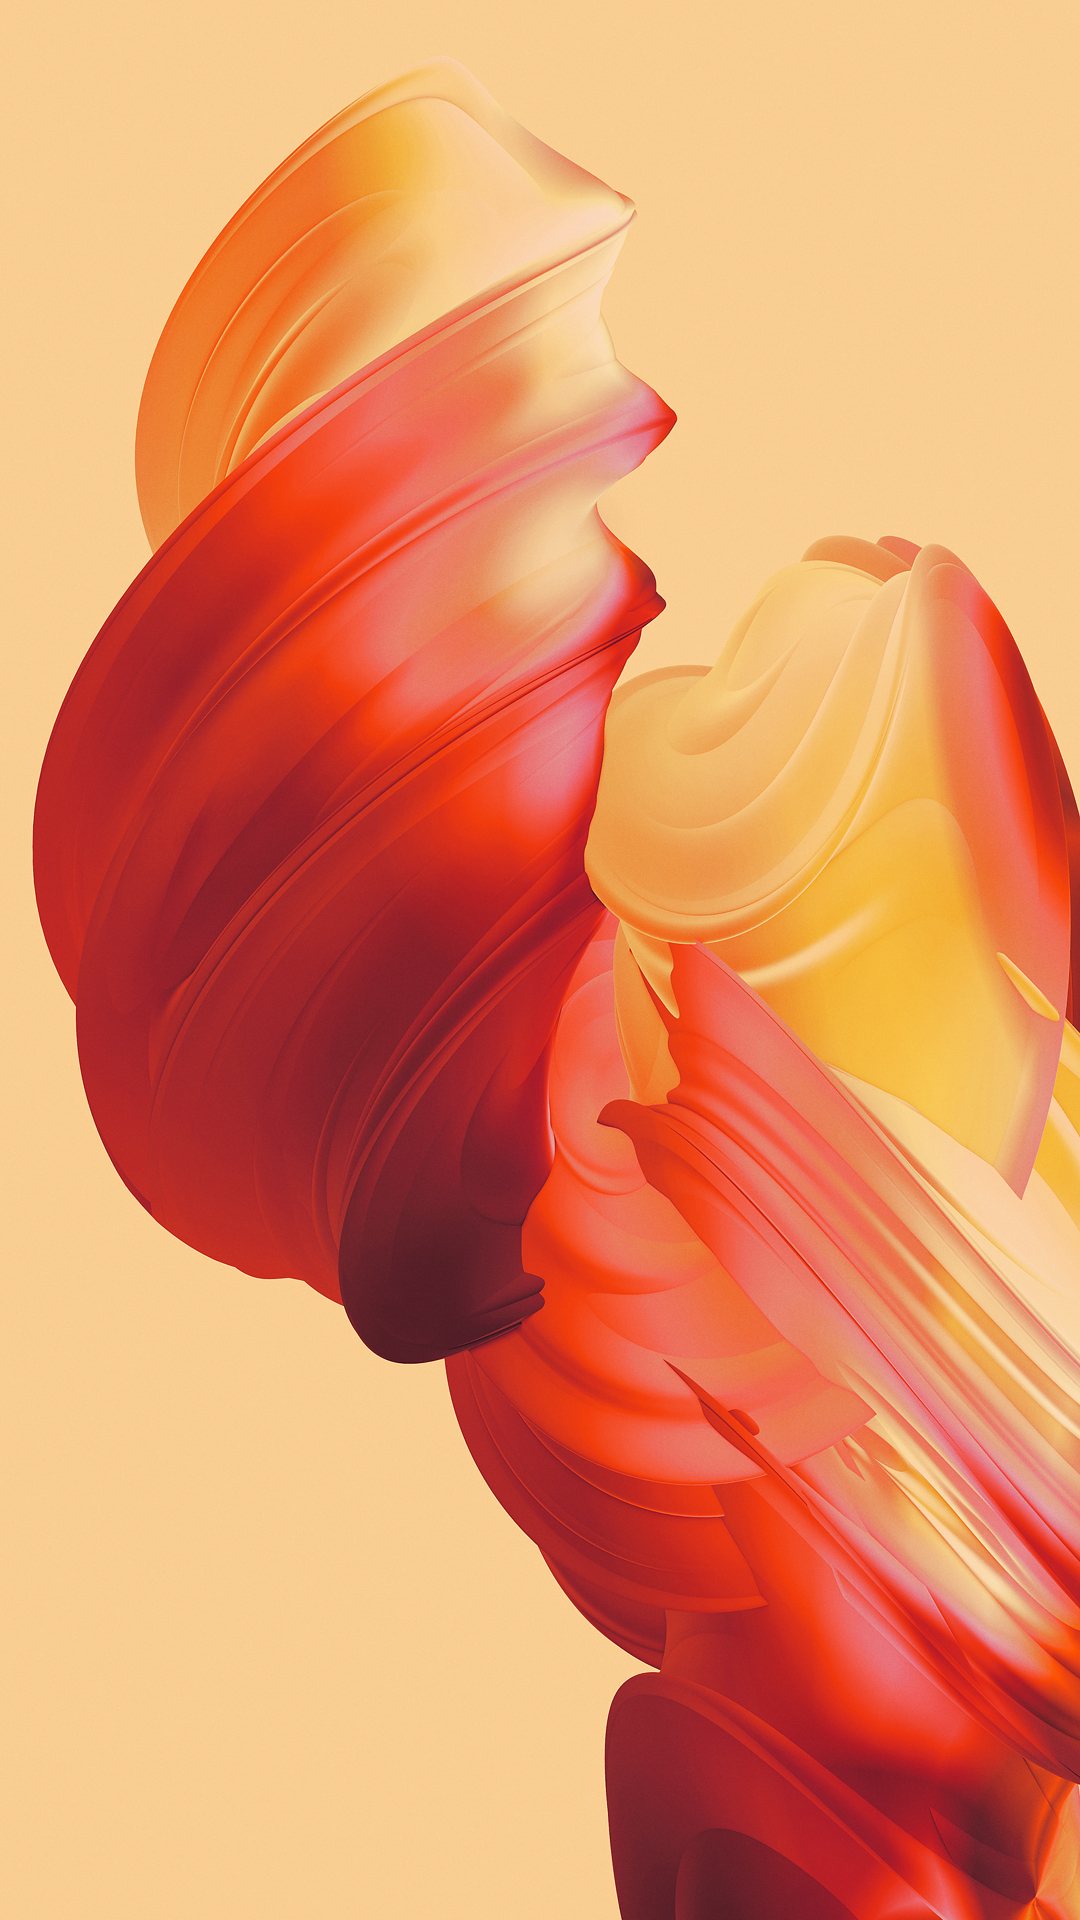 Download OnePlus 5 Stock Wallpapers DroidViews 1080x1920